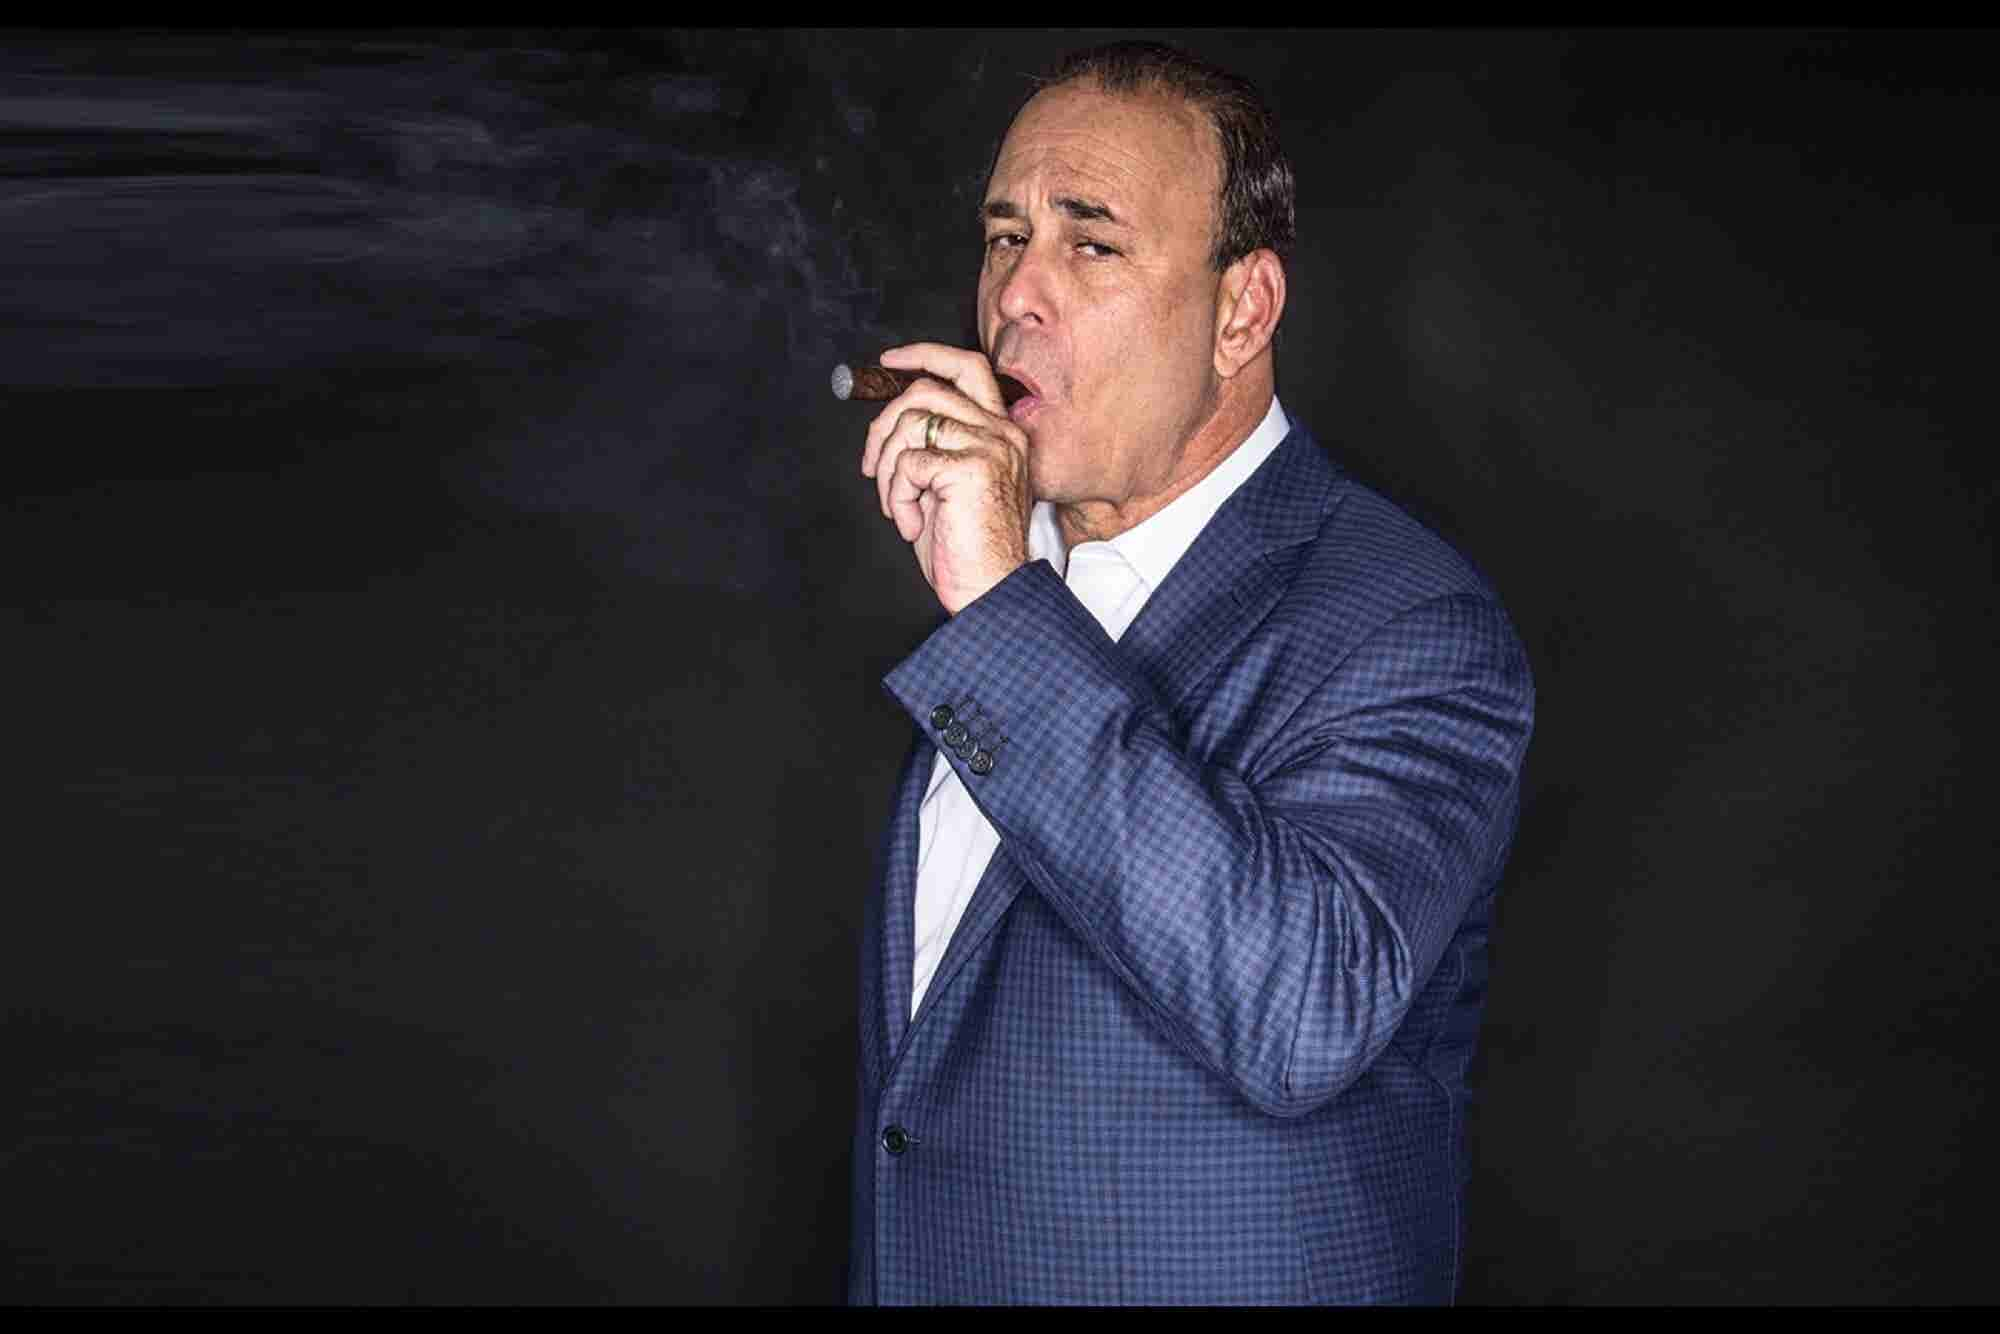 Bar Rescue's Jon Taffer on Why He's Such an Asshole